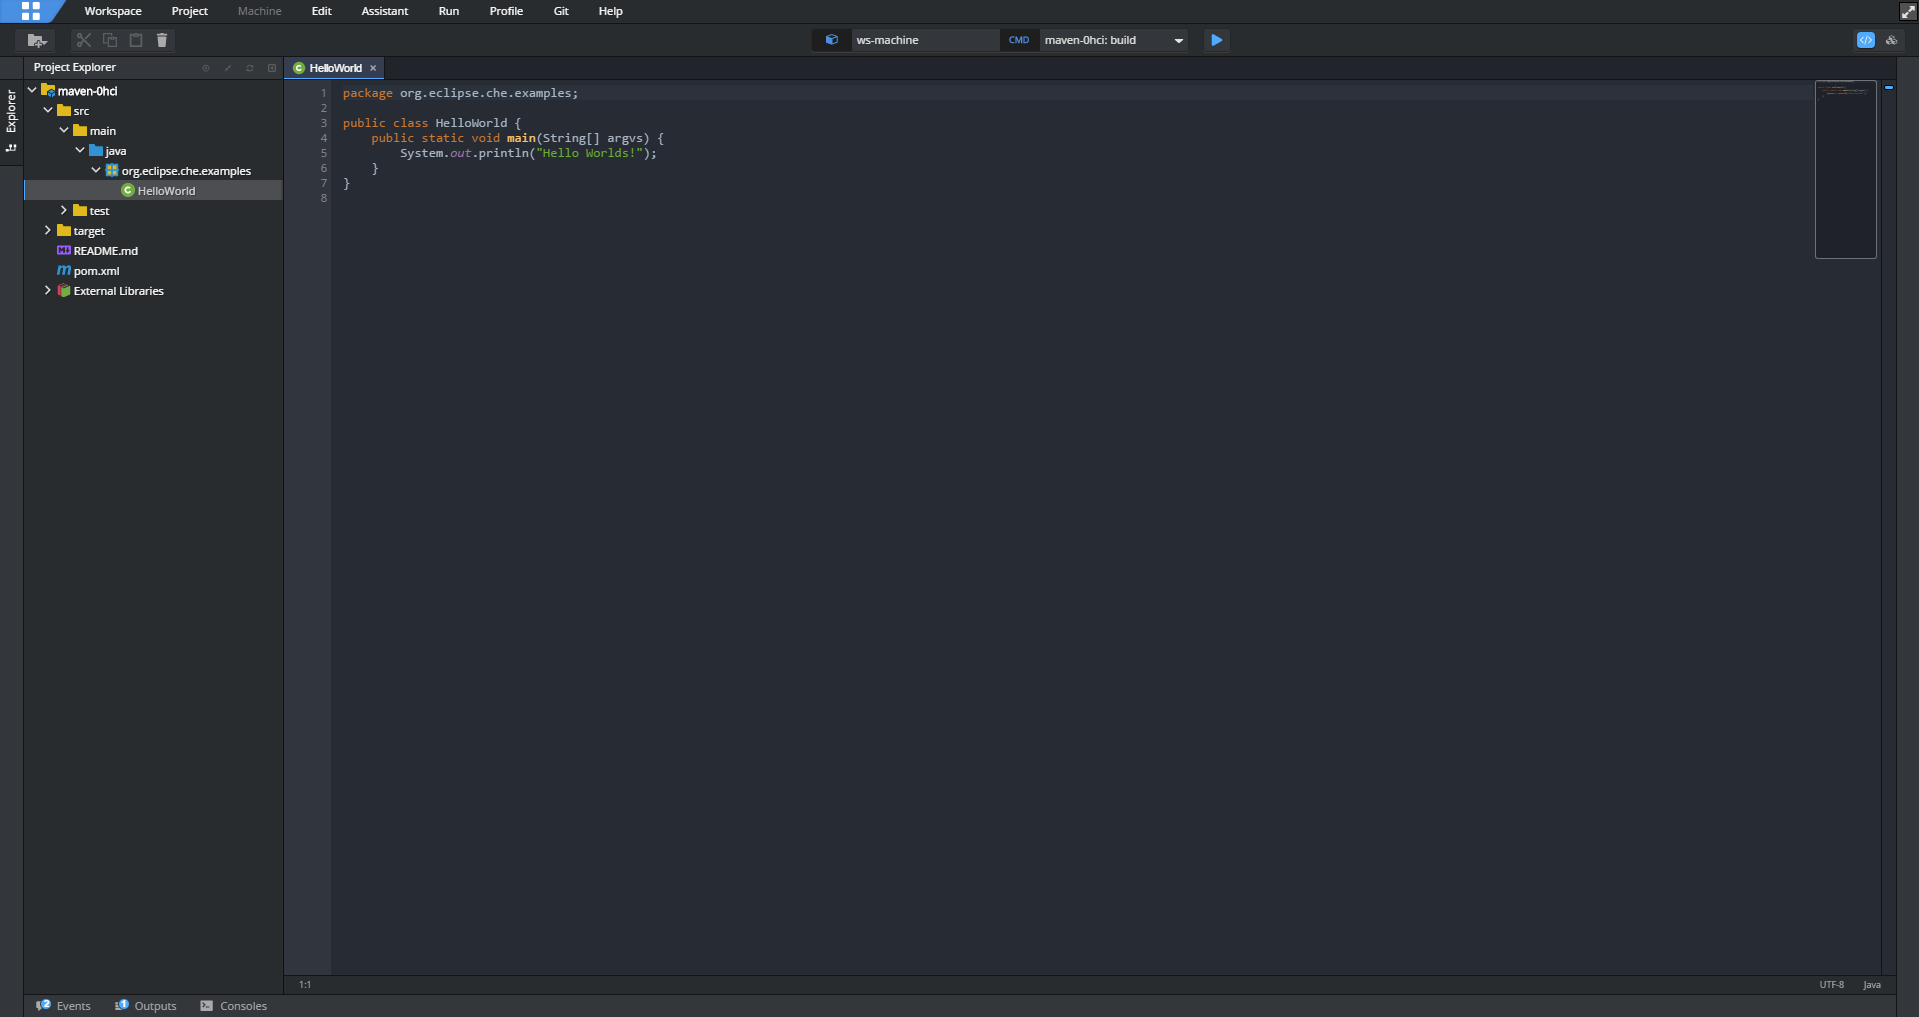 Eclipse CHE IDE Screenshot no Markers